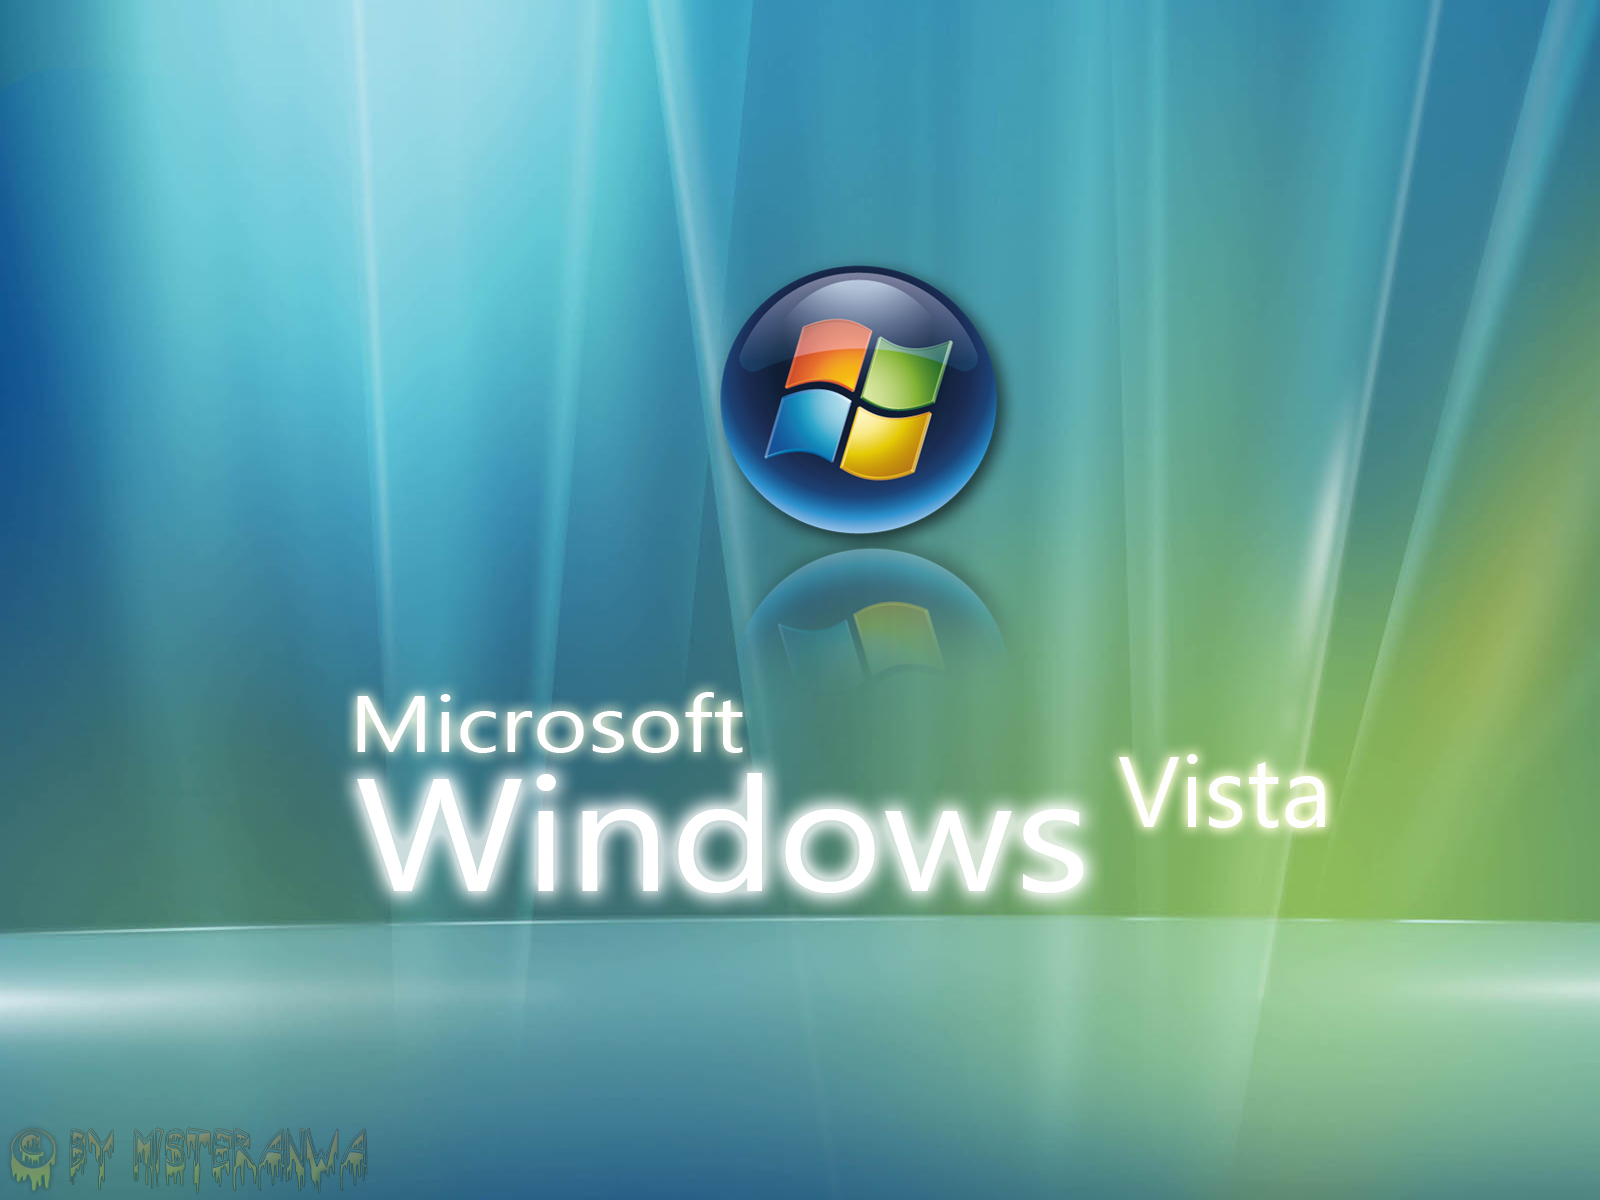 windows vista wallpaper set 7 awesome wallpapers